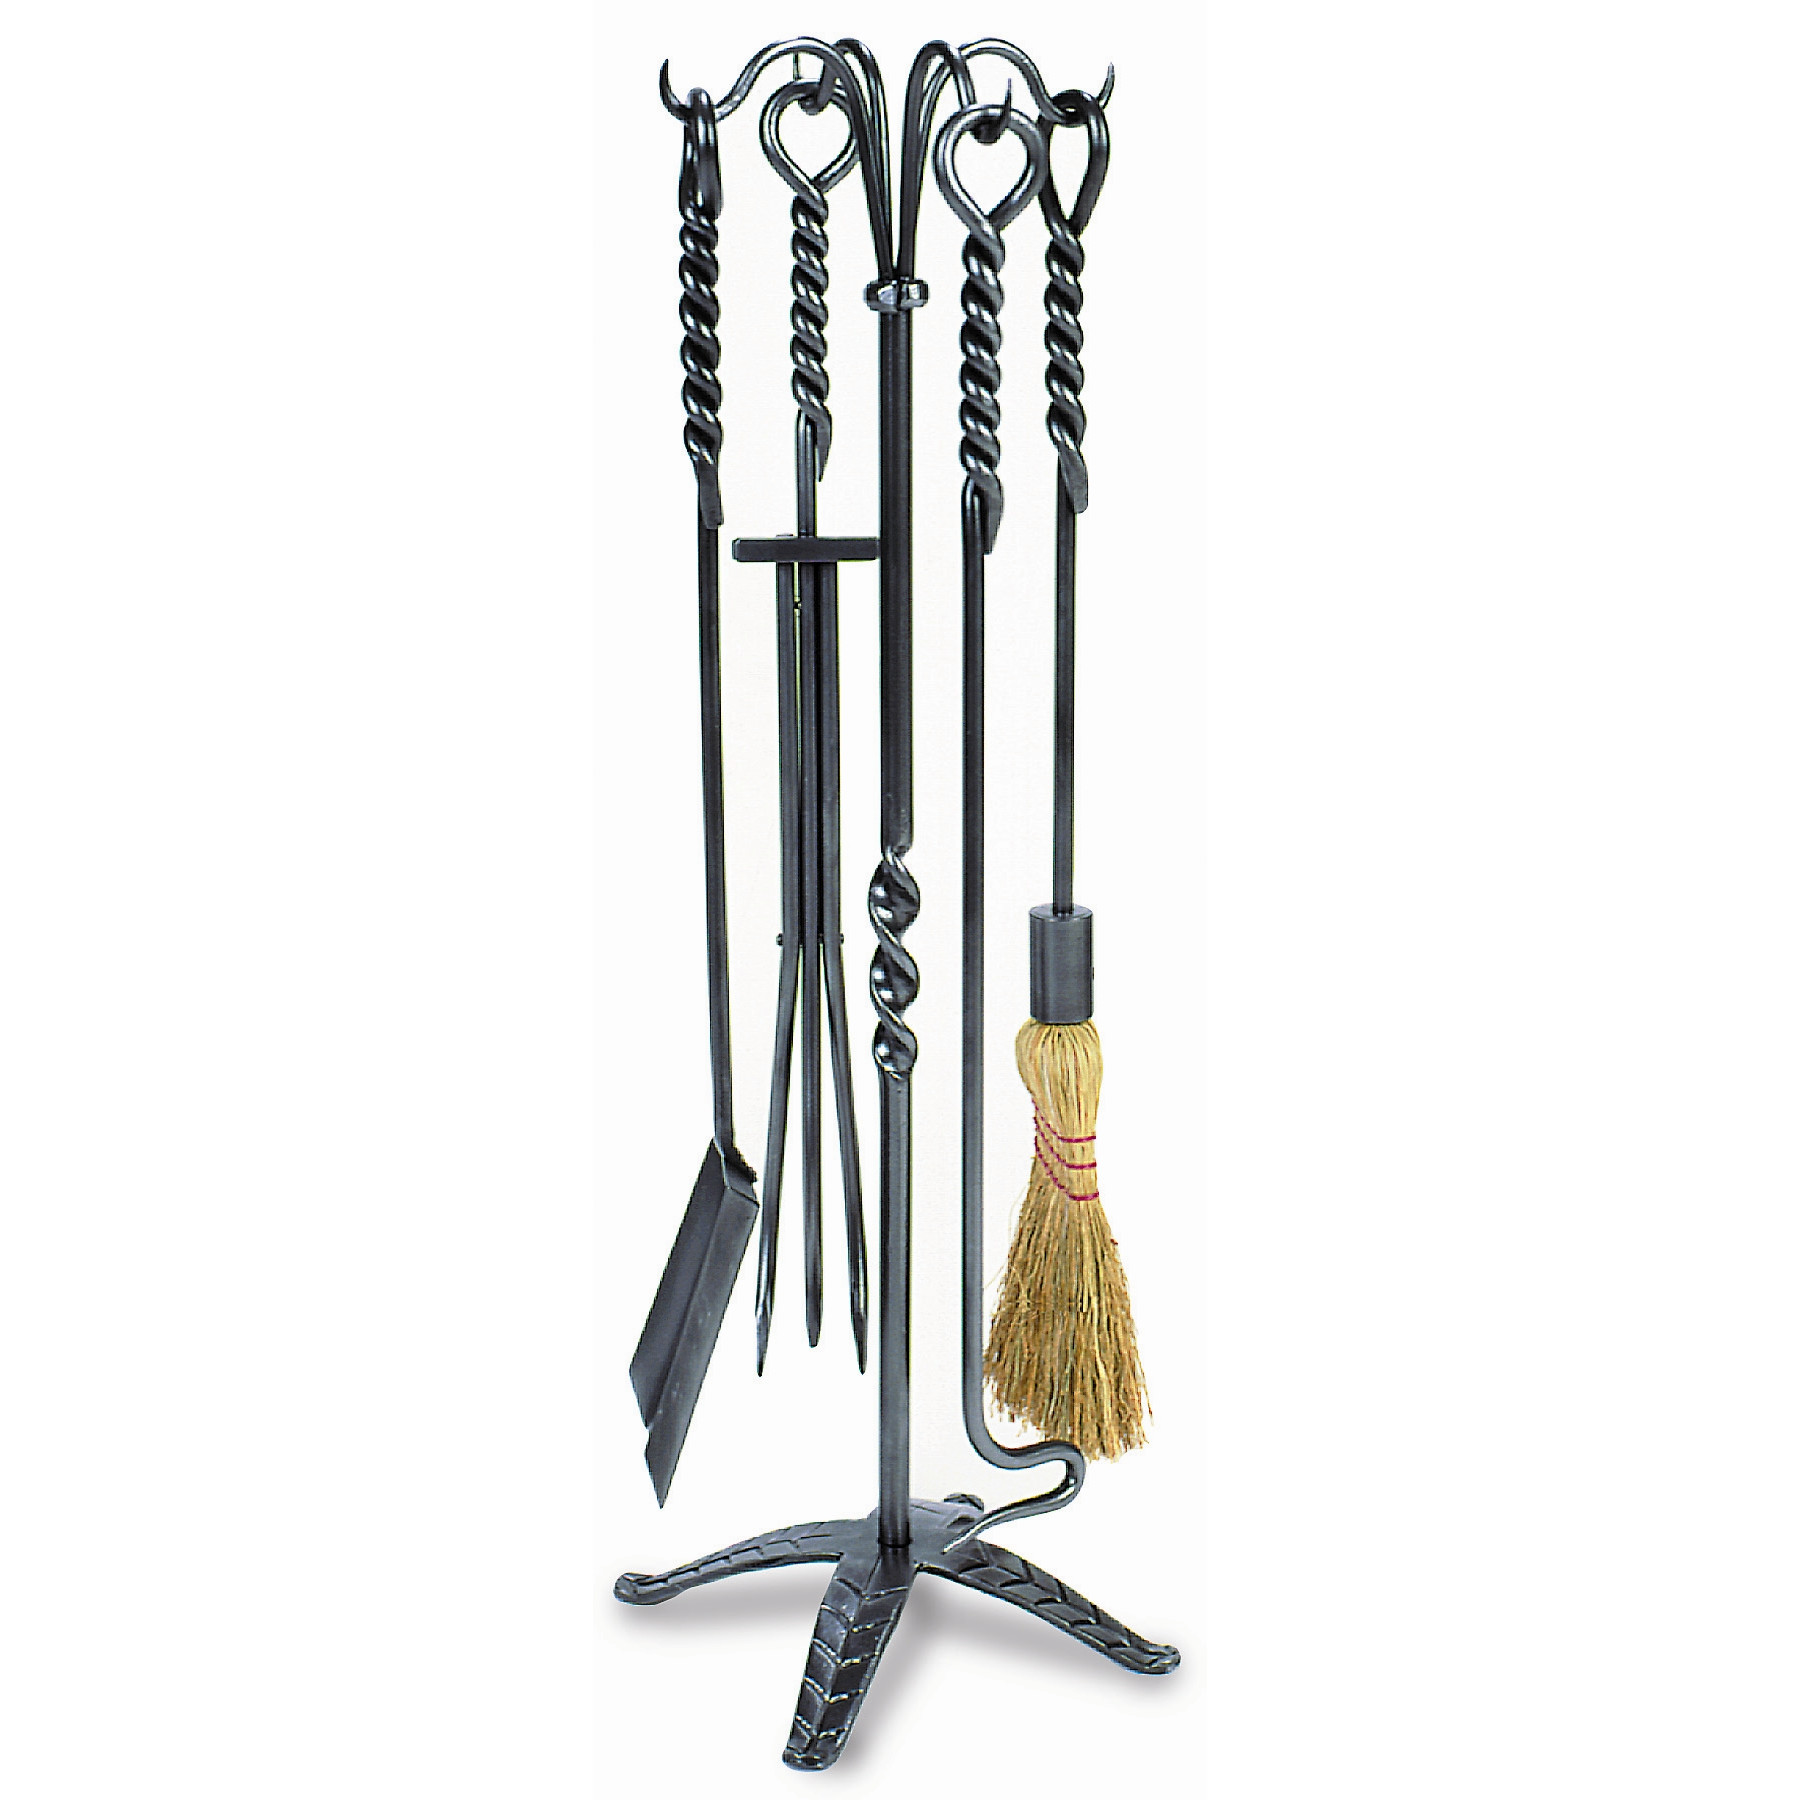 Breathtaking wrought iron fireplace tools pine firelace tool for your home interior tool improvements